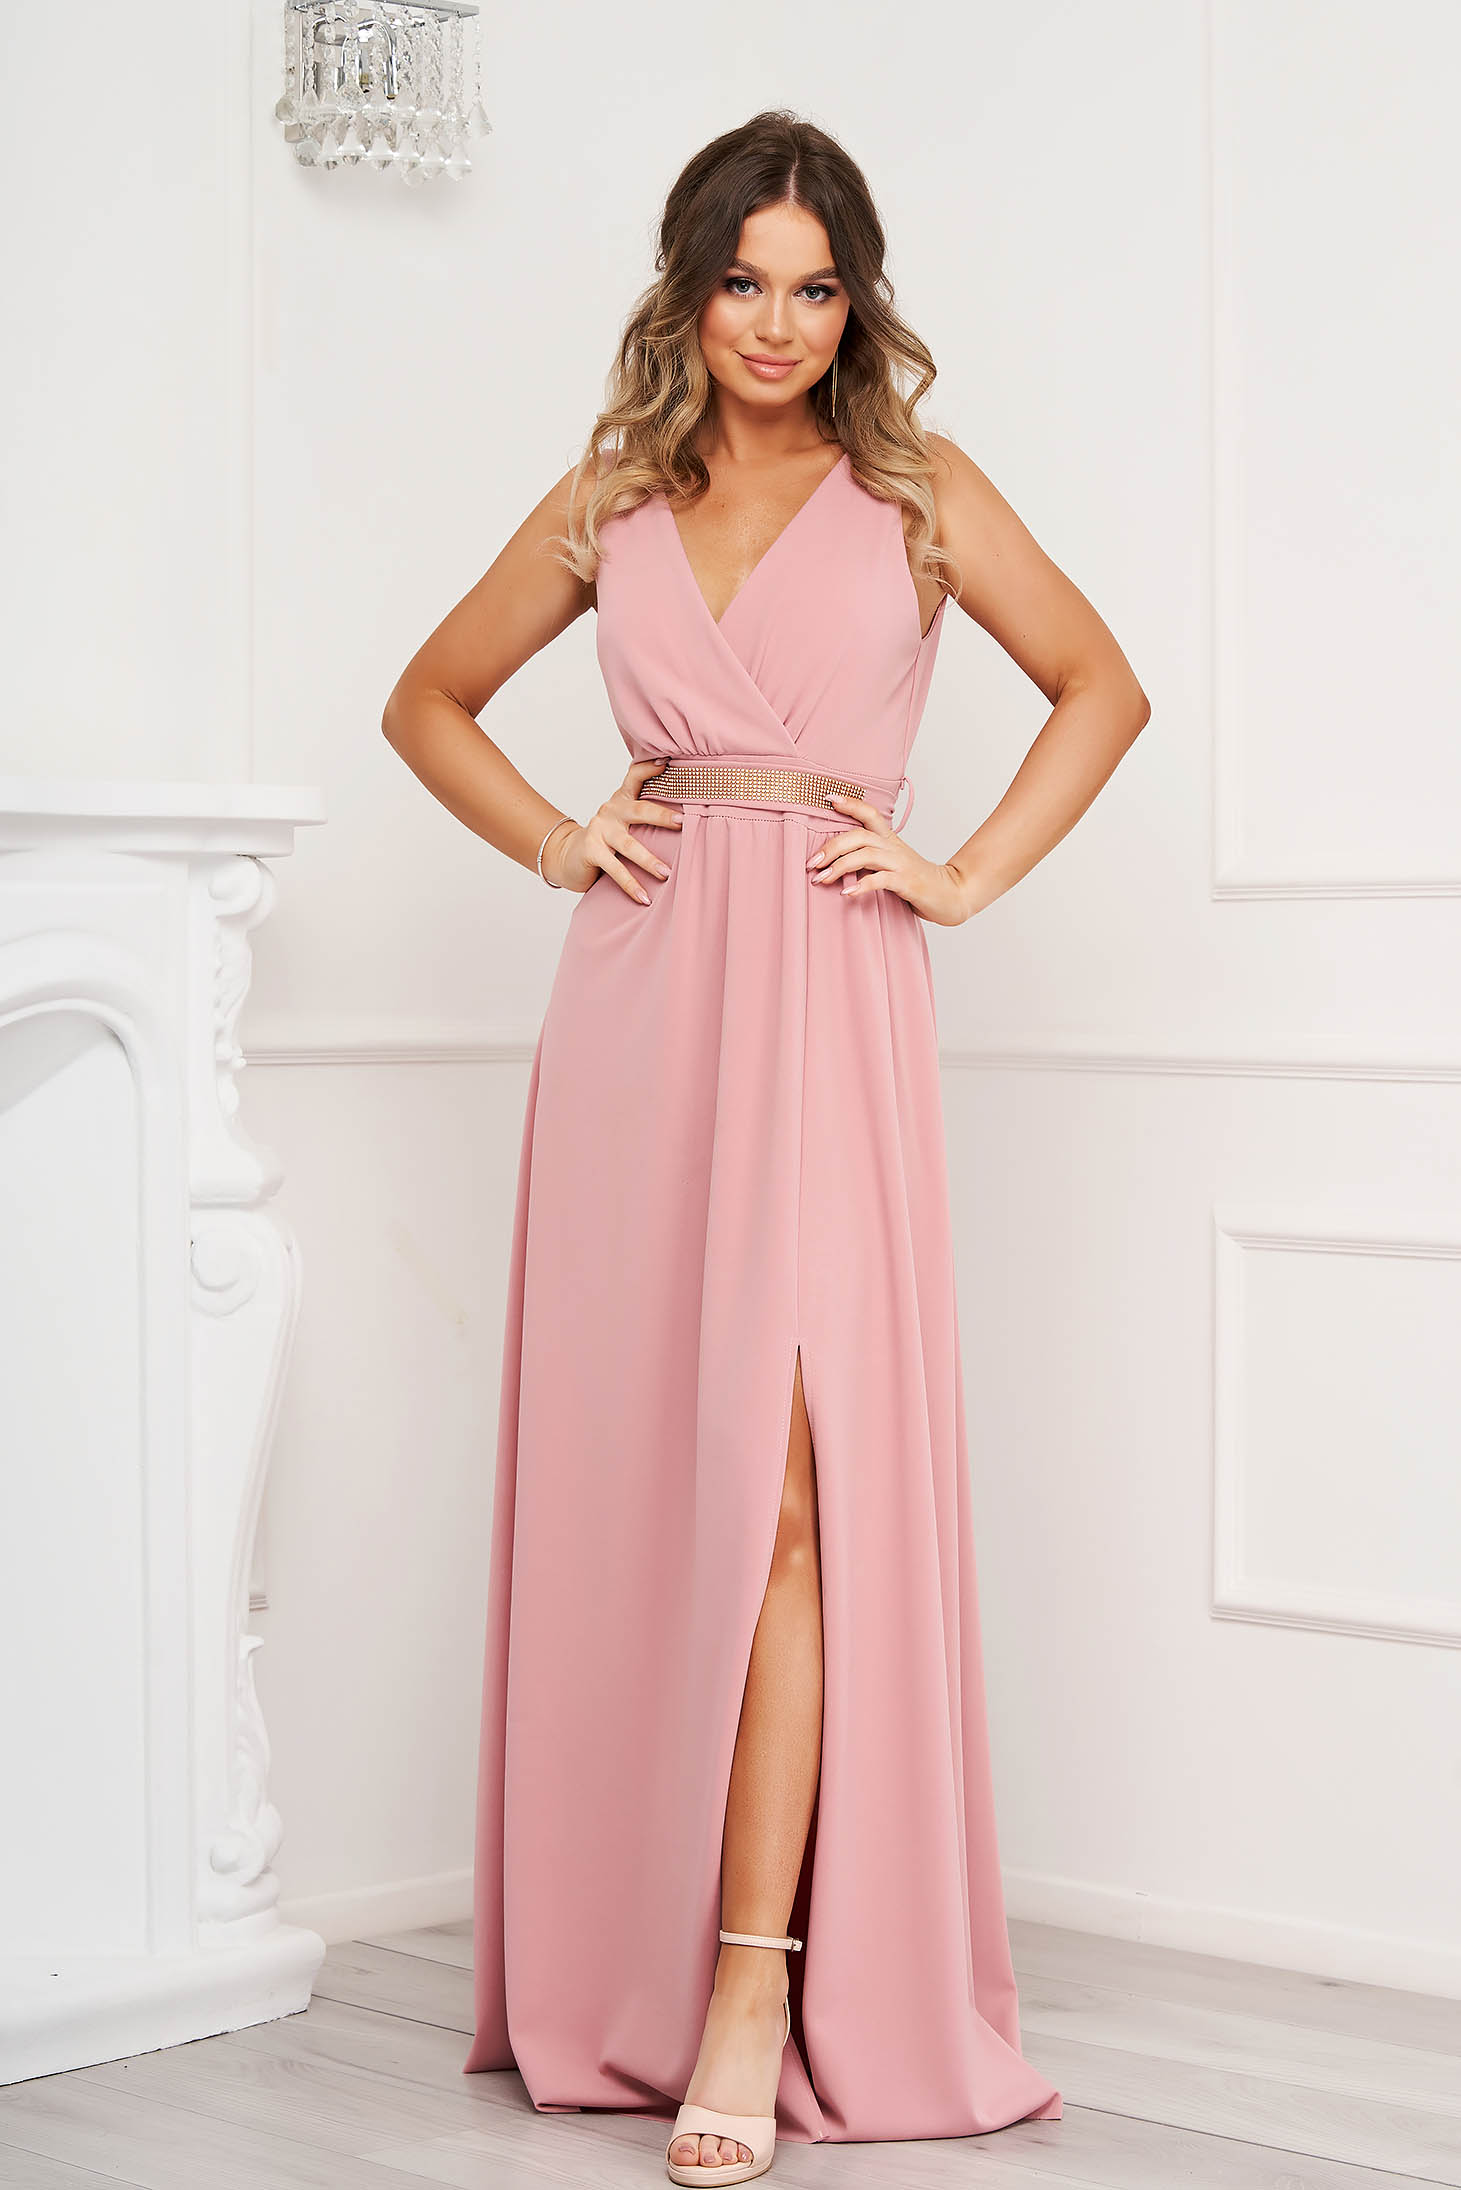 Lightpink dress cloche occasional slit from elastic fabric with v-neckline with embellished accessories